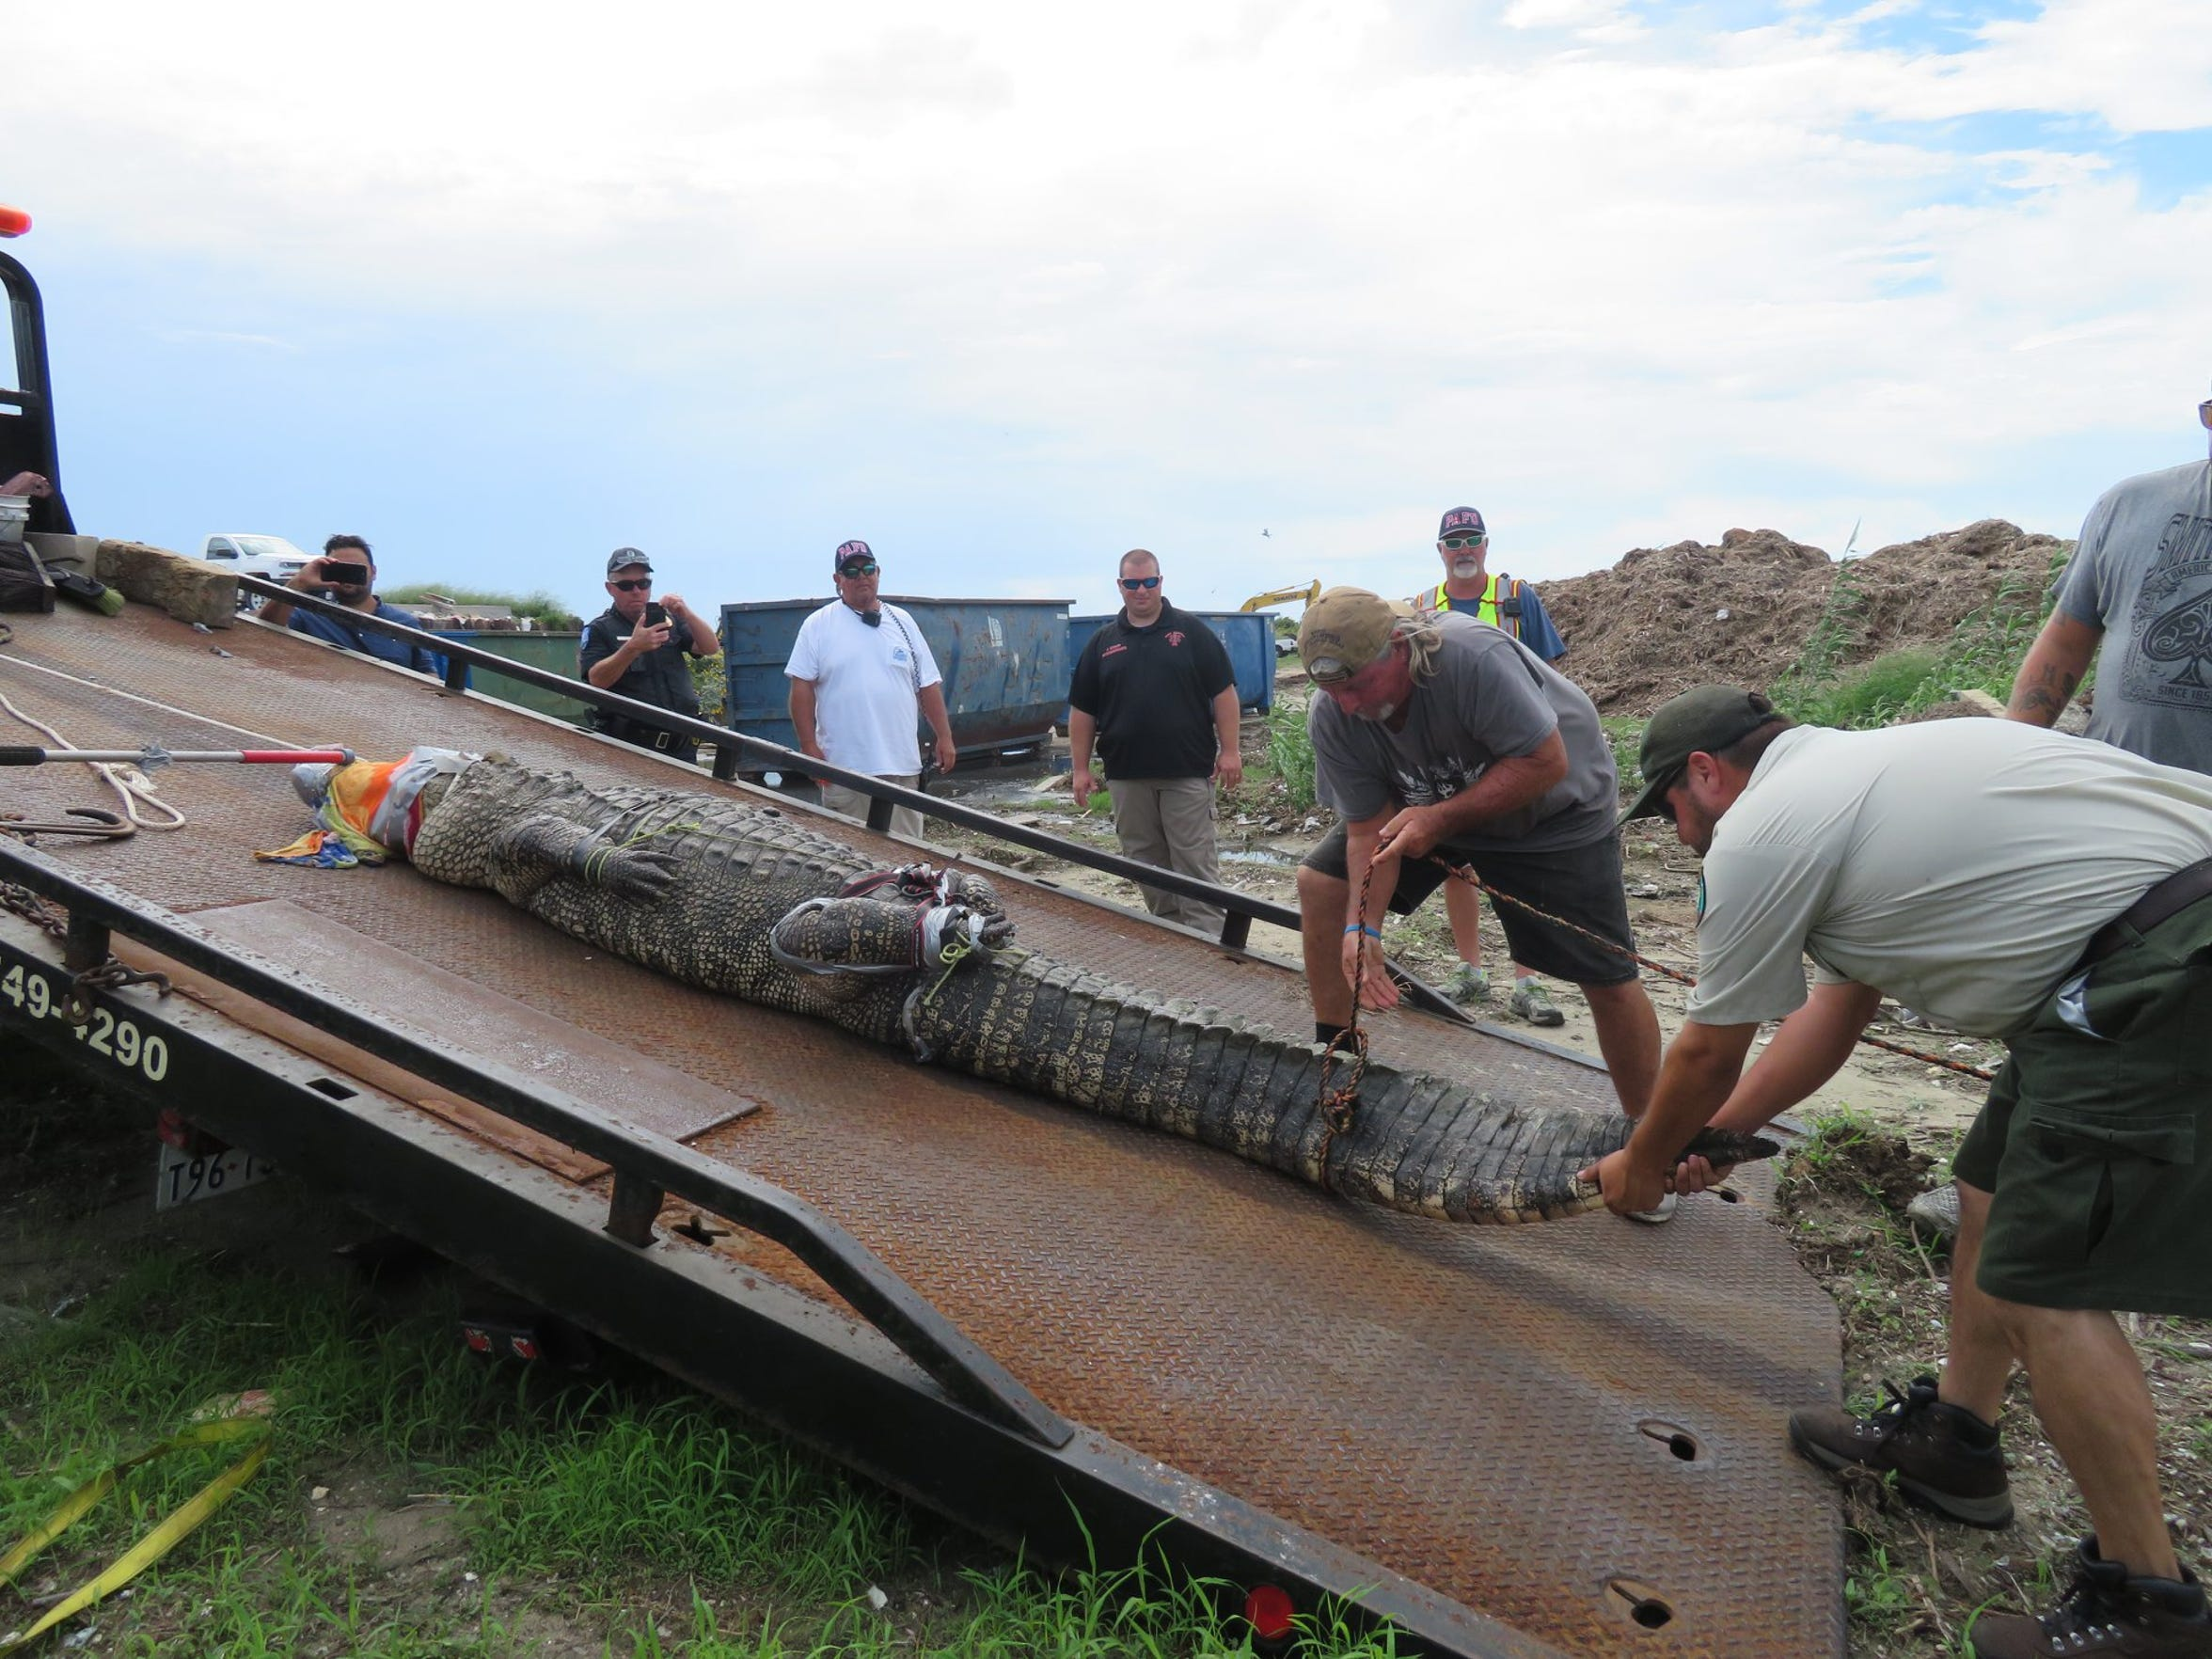 Alligator handlers slide a 12-foot gator off a flatbed wrecker truck after capturing it from a drainage canal near Station Street in Port  Aransas.